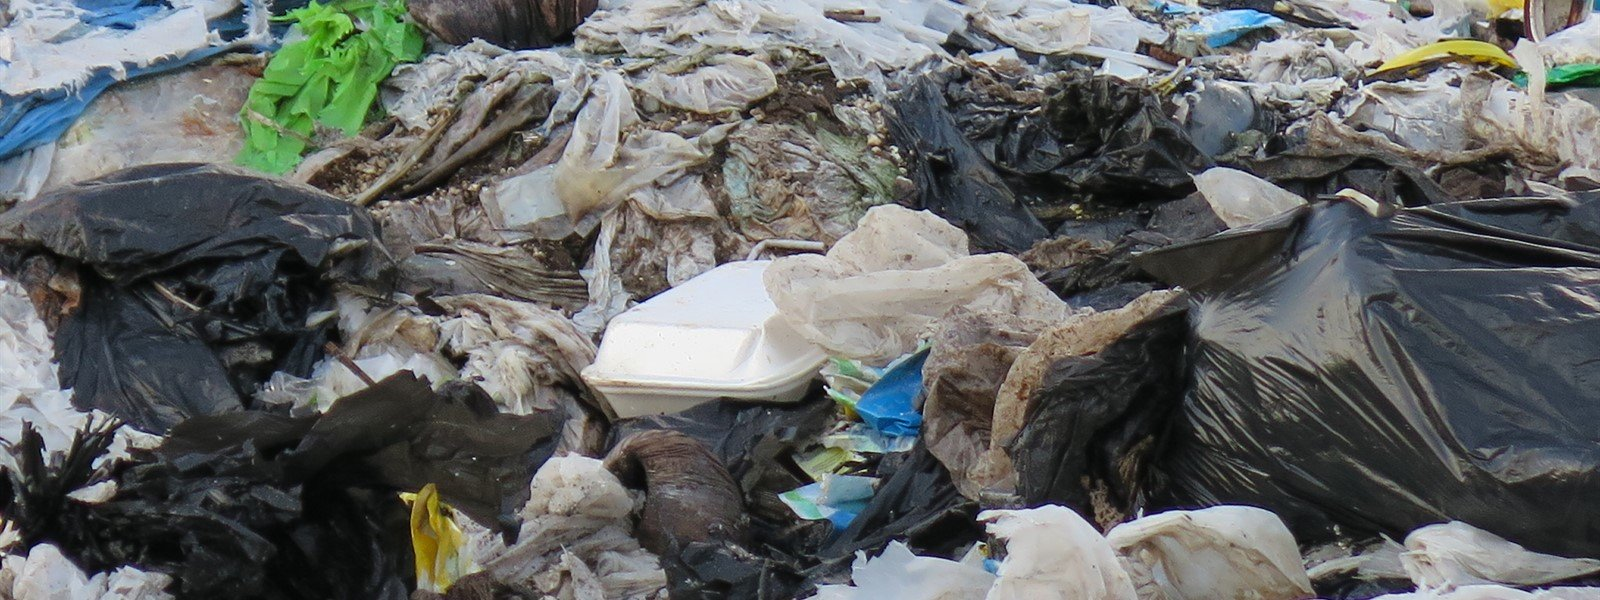 Picture of trash collected from a beach clean-up.